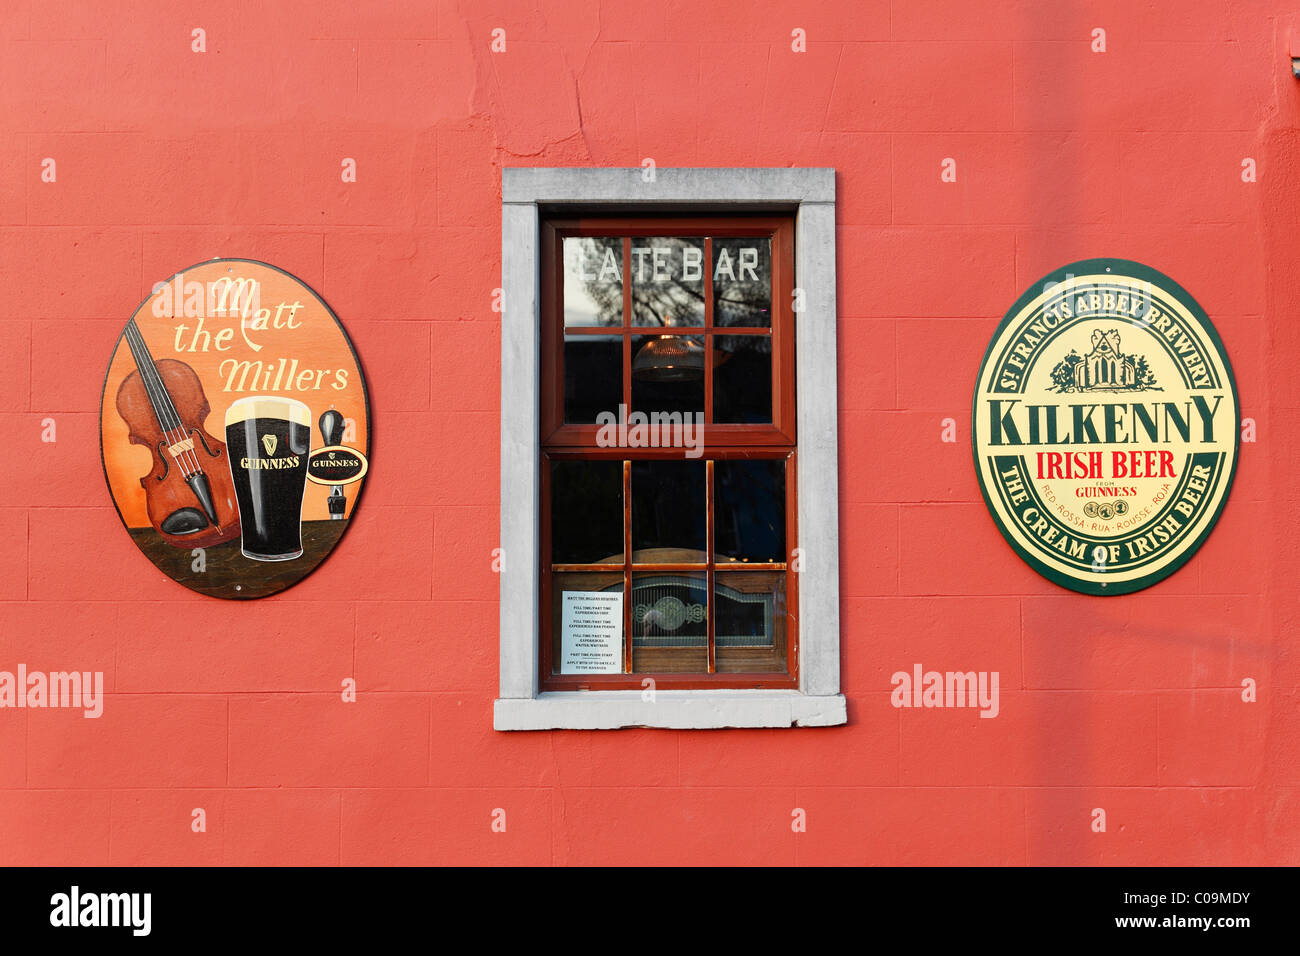 Outer wall of a pub, Matt the Miller, emblems of Guinness beer and St. Francis Abbey Brewery, Kilkenny, County Kilkenny, - Stock Image